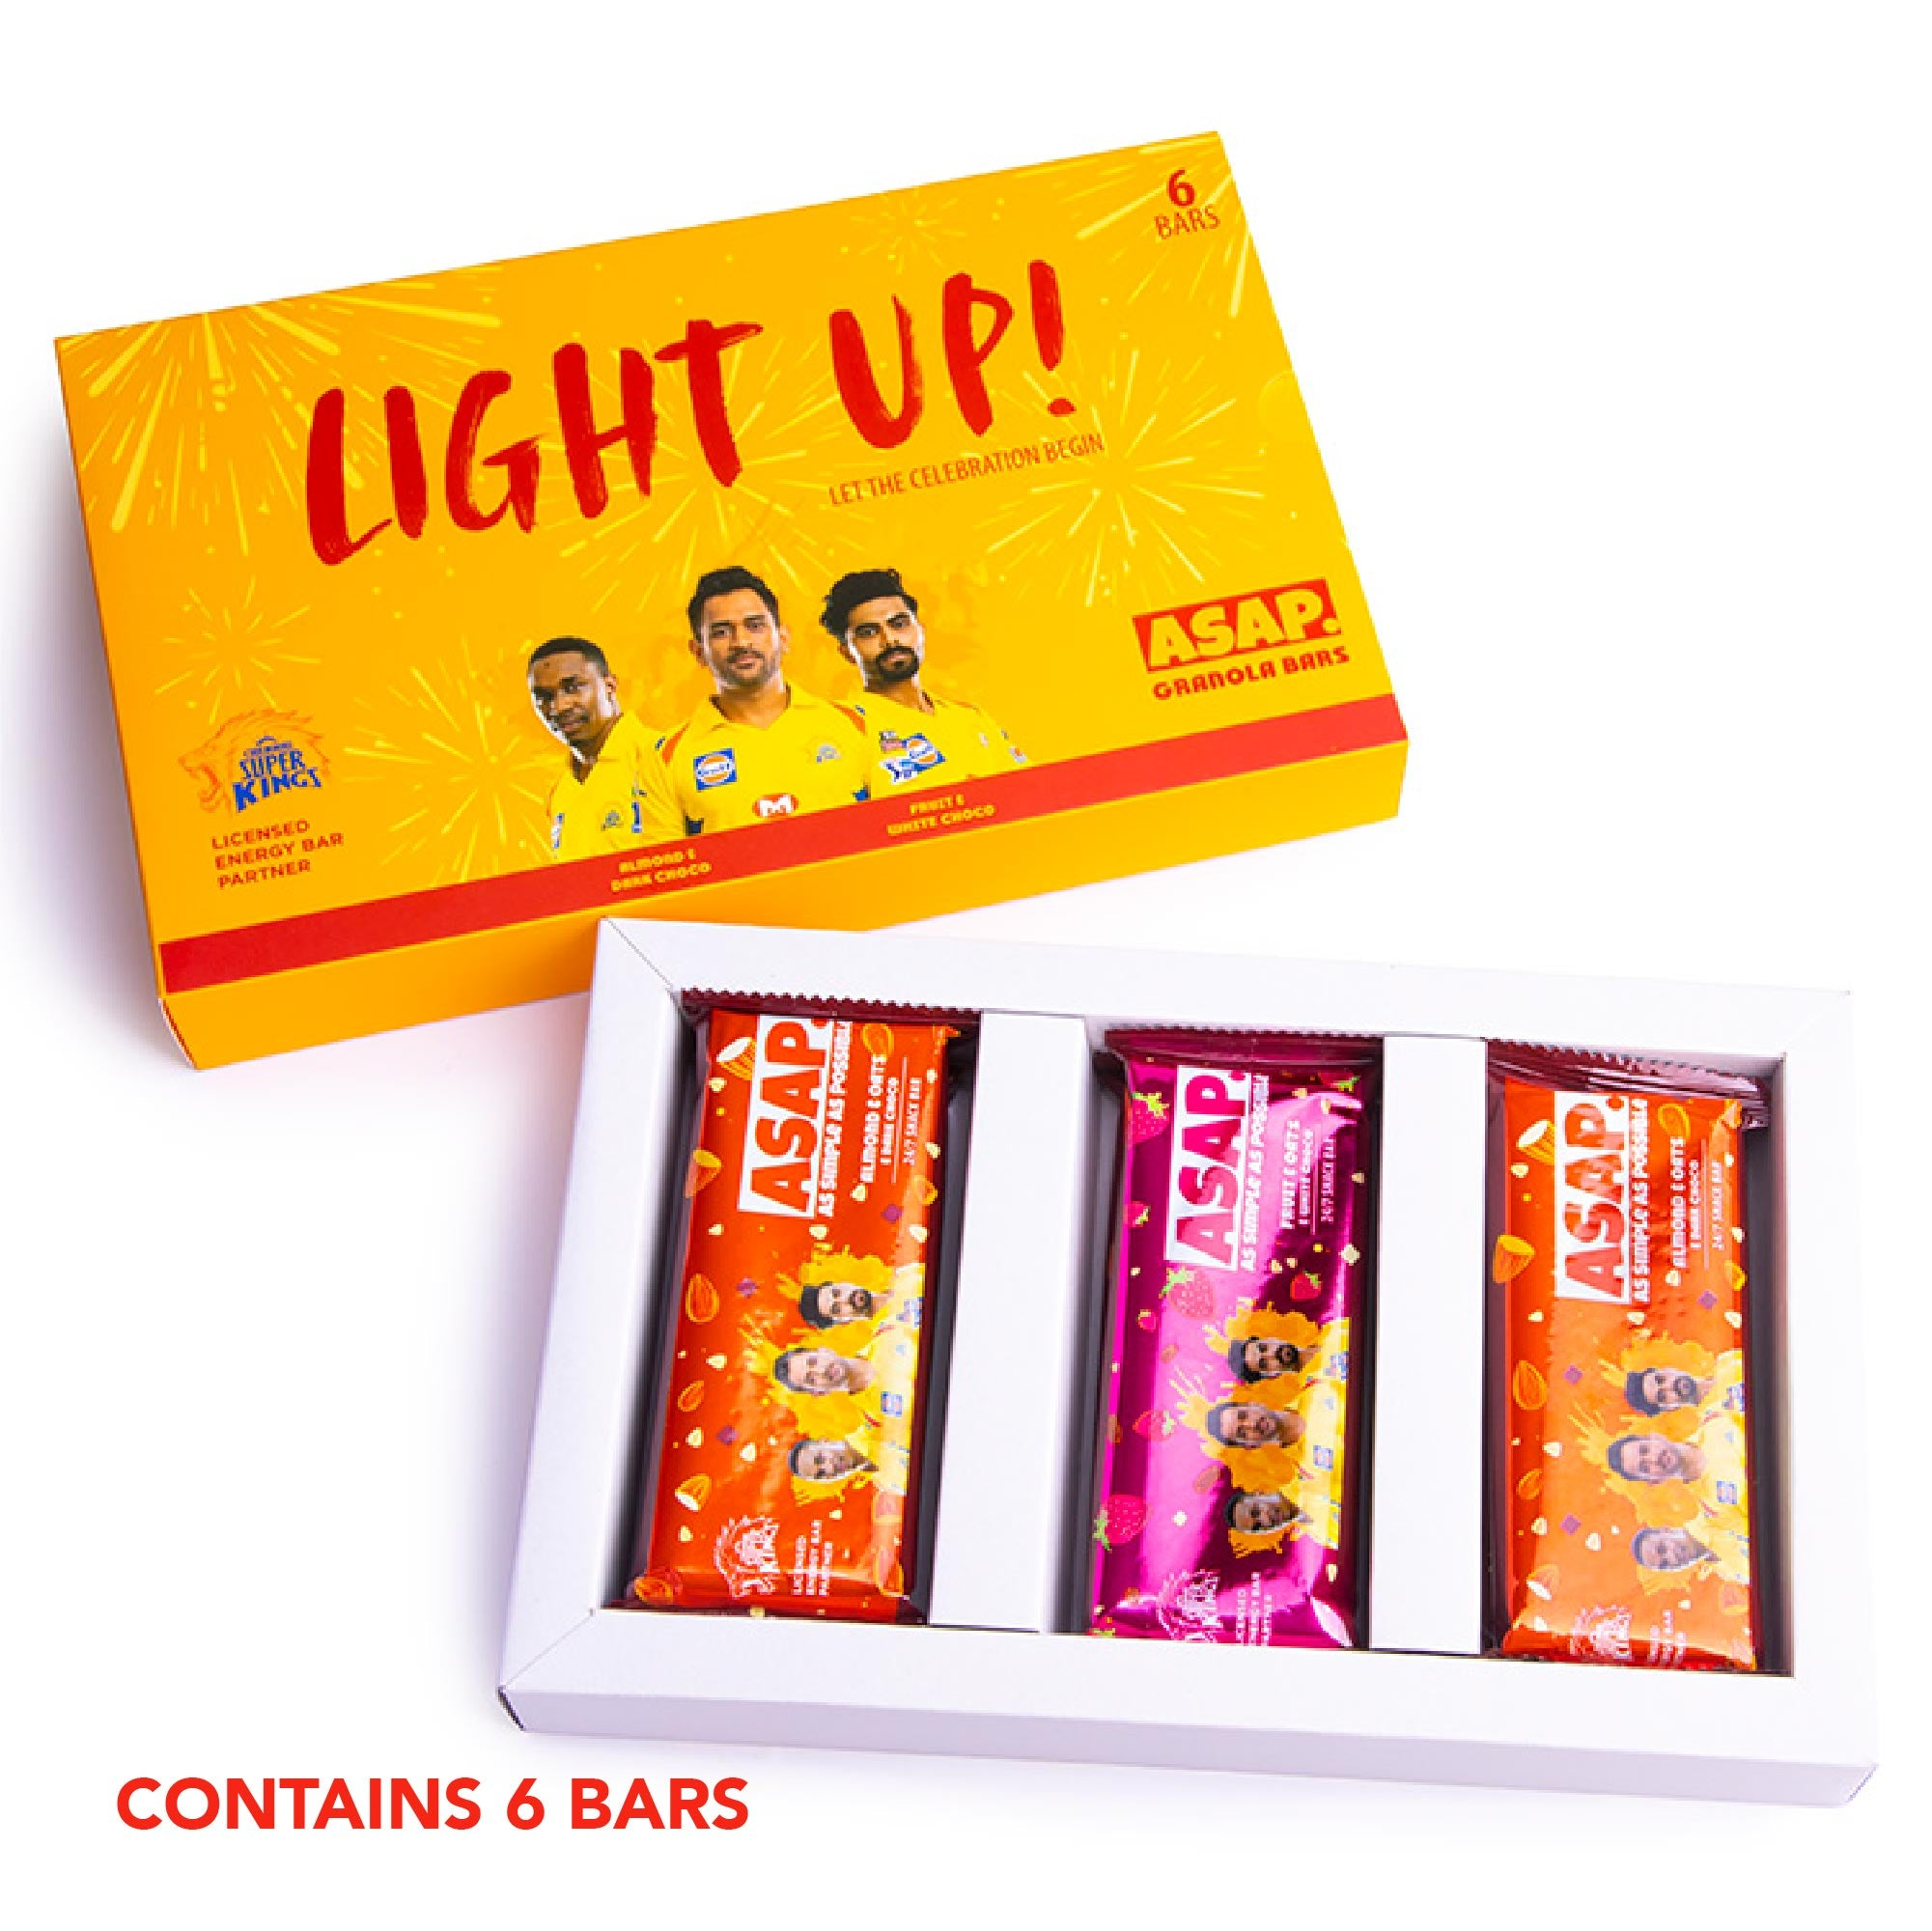 ASAP Festive pack of 6 snack bars - limited time special edition CSK packs